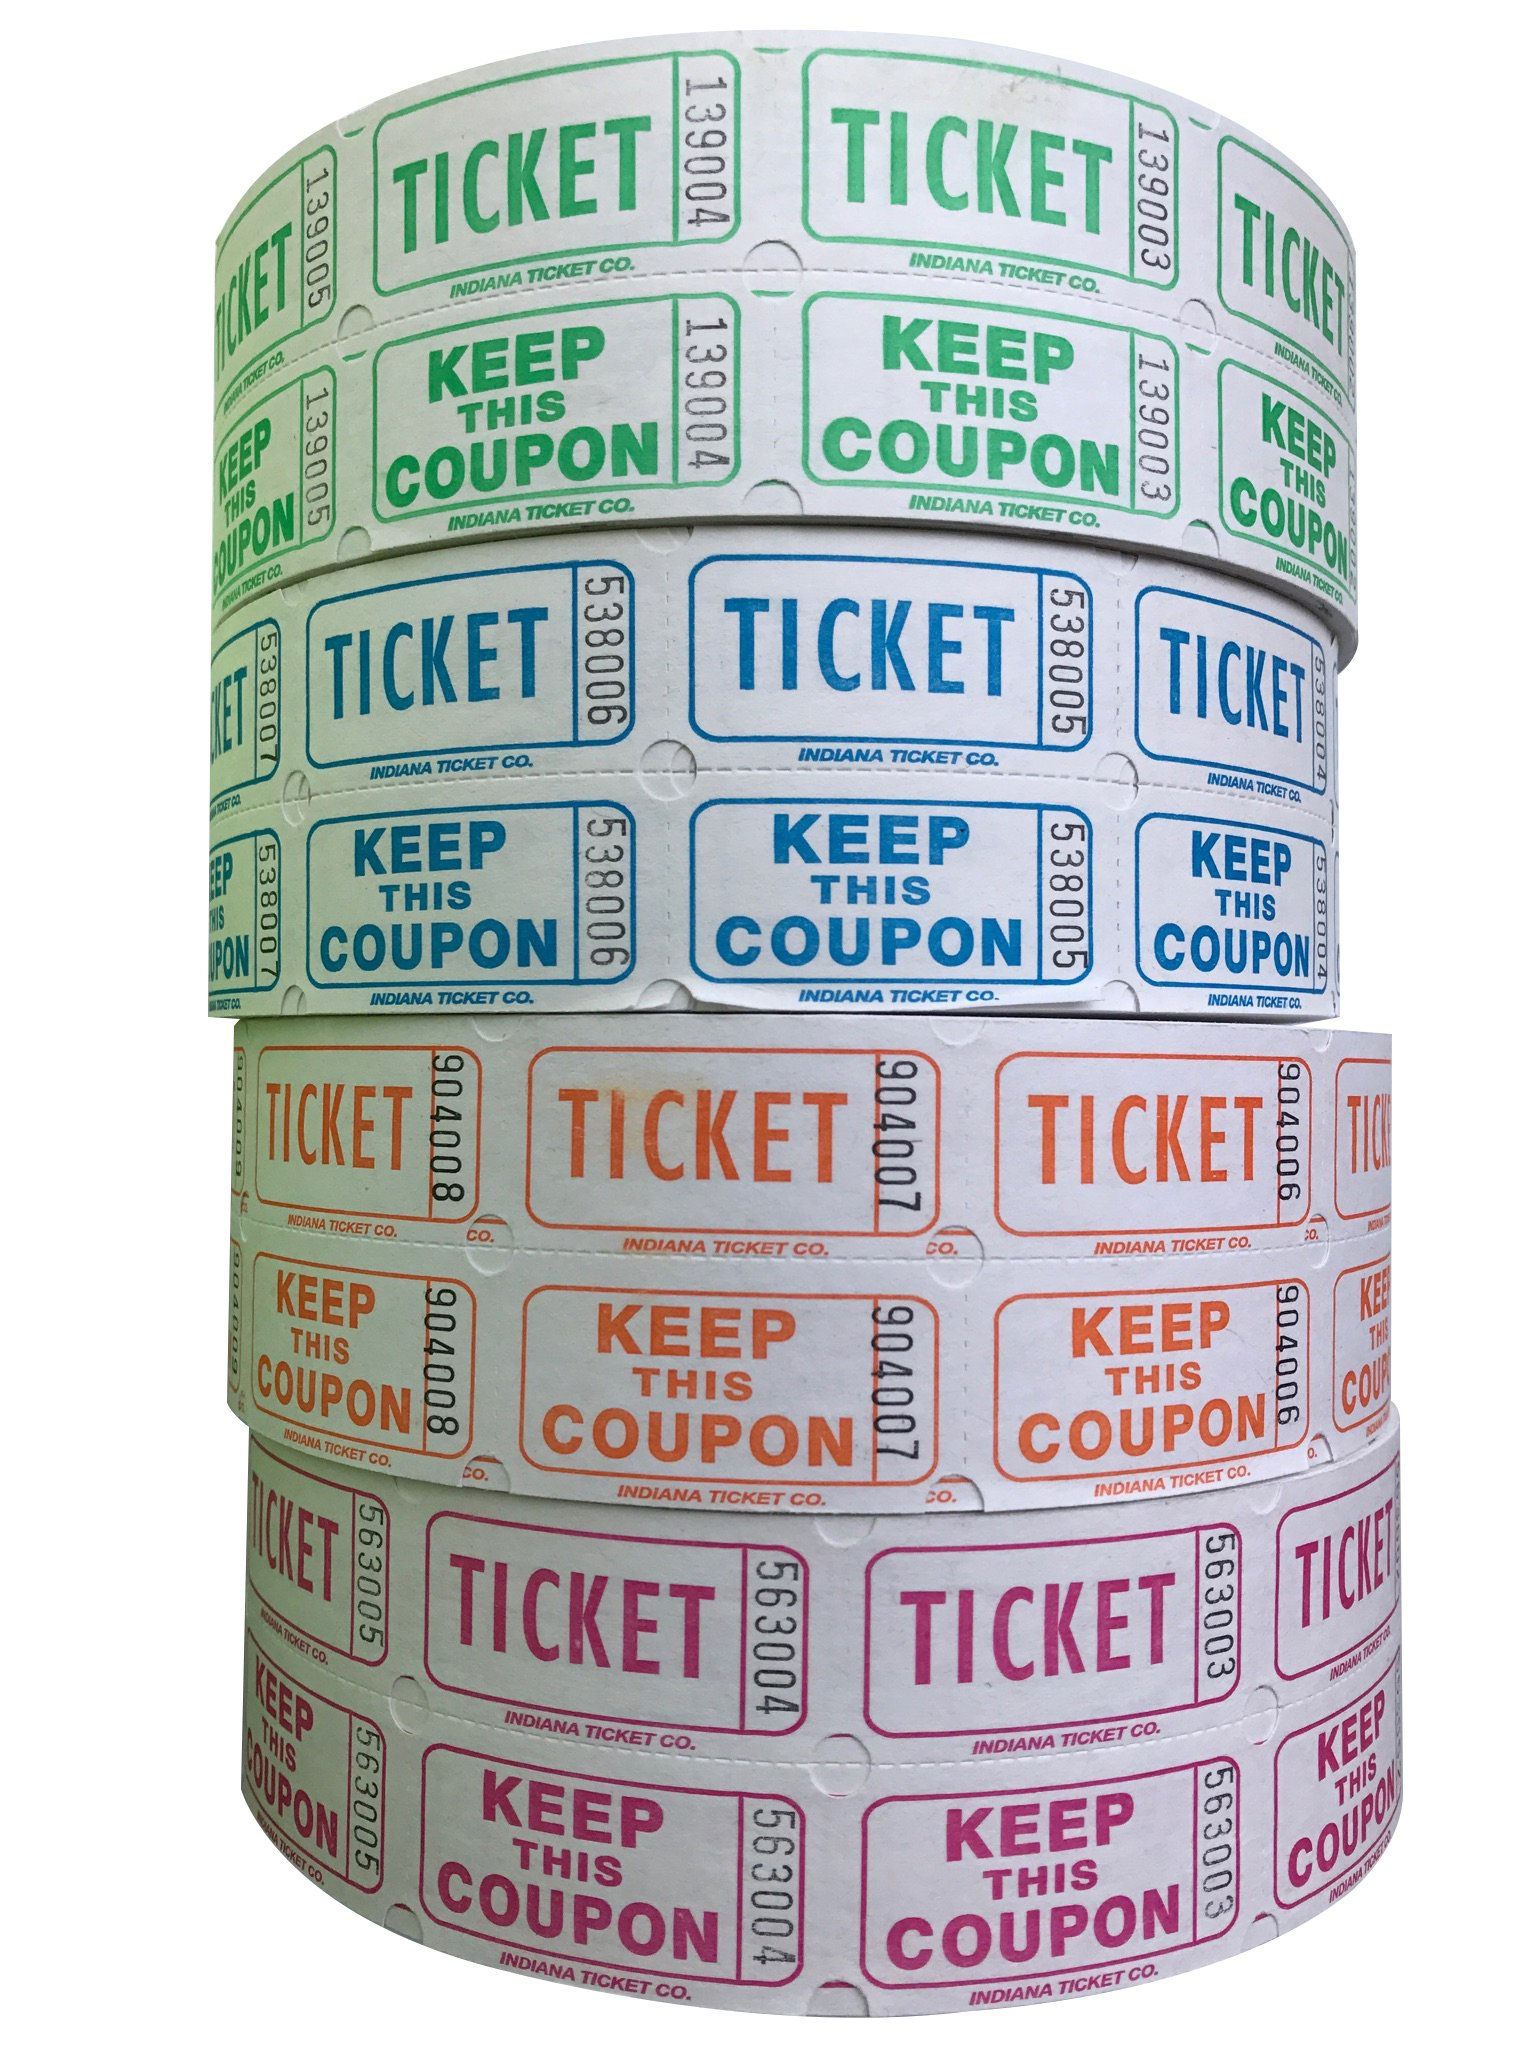 Raffle Tickets - (4 Rolls of 2000 Double Tickets) 8,000 Total 50/50 Raffle Tickets (Lime/Blueberry/Tangerine/Raspberry) by Indiana Ticket Company